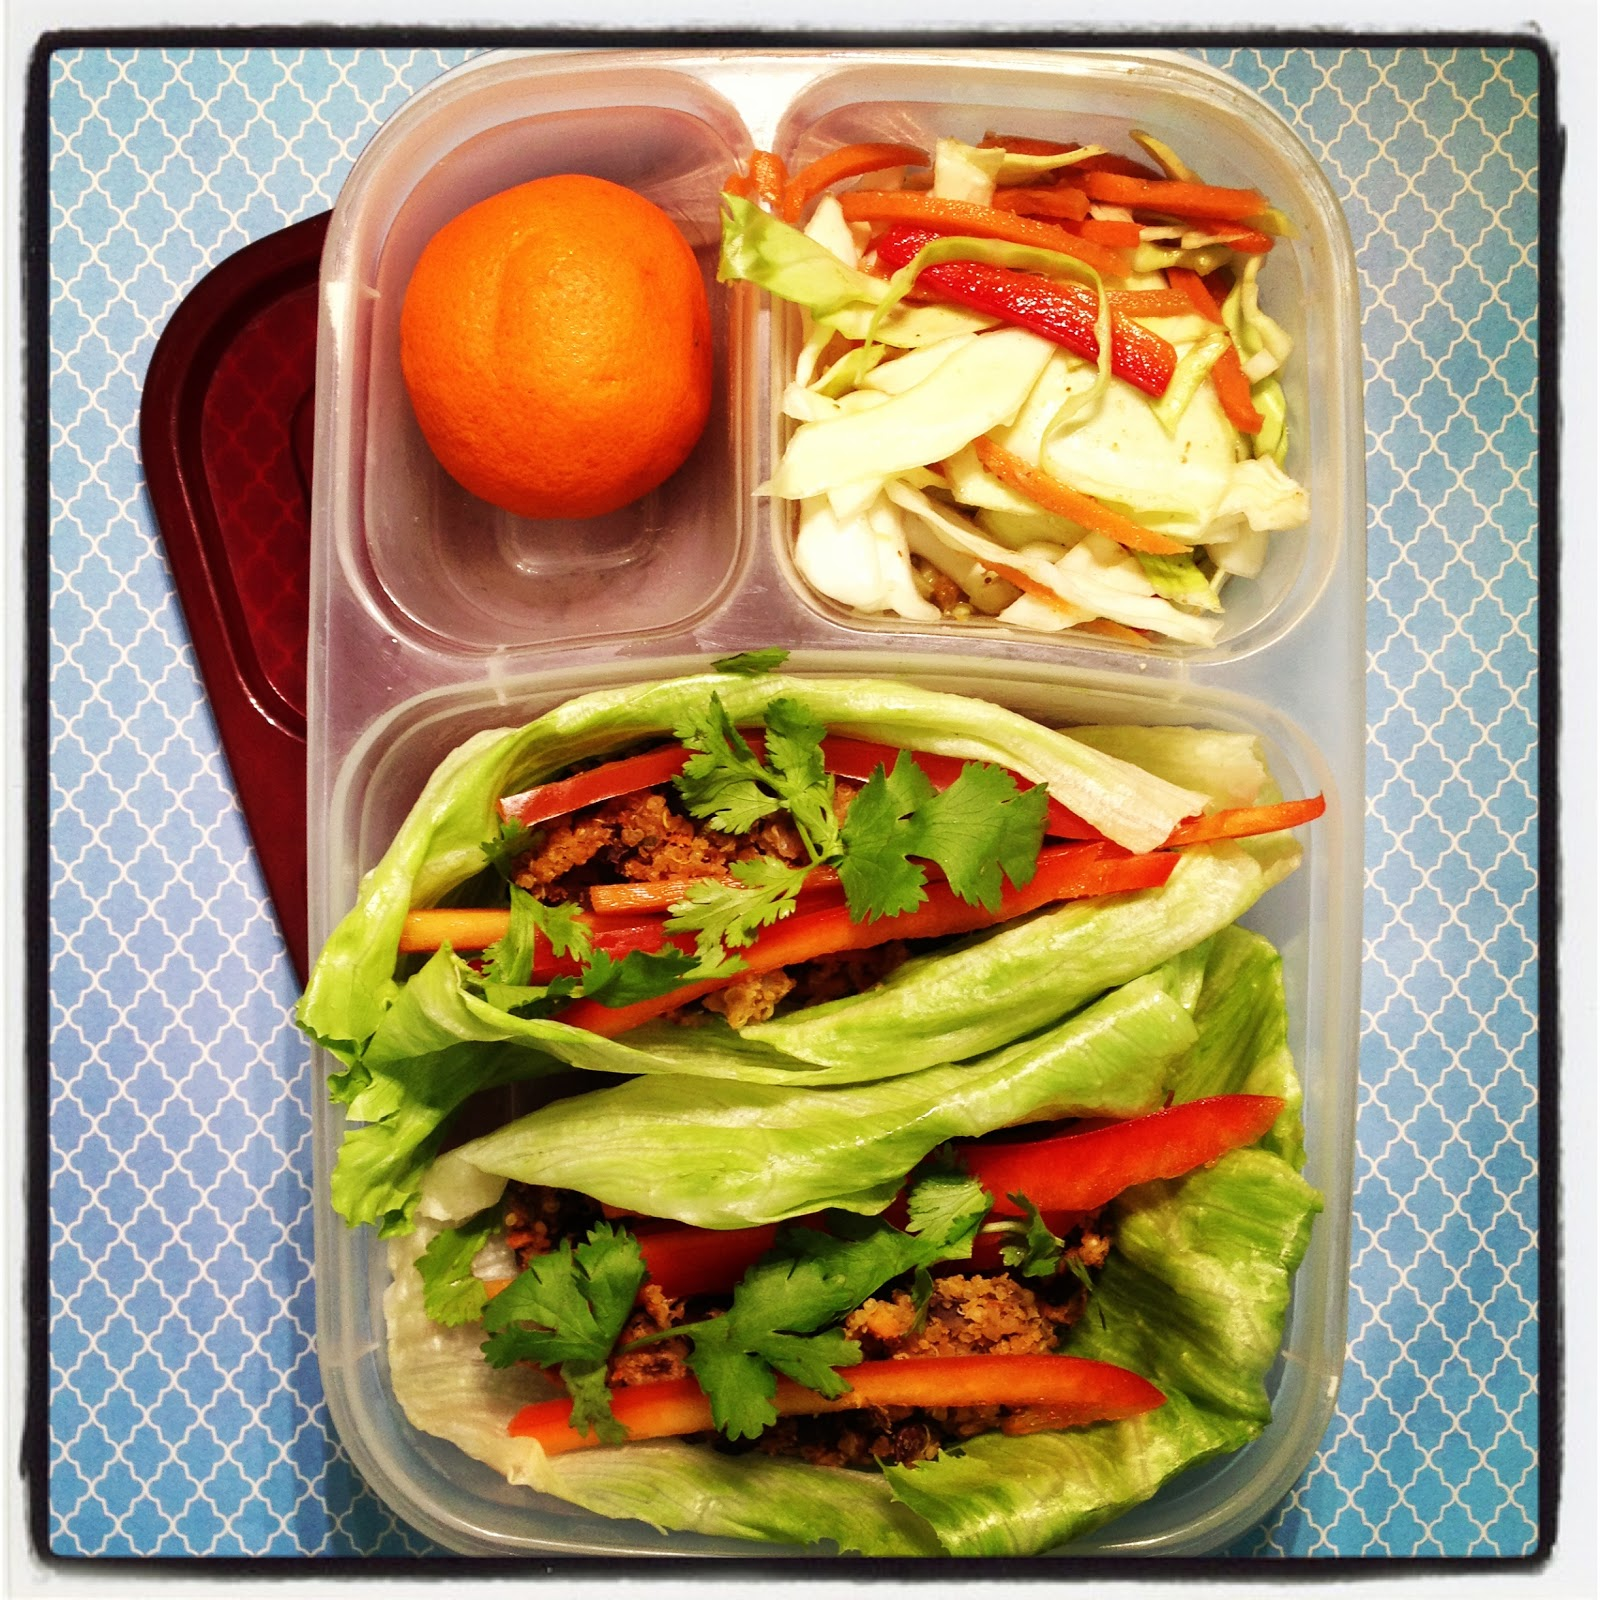 Lunch In A Box Amy In Austin Lunch In A Box Asian Black Bean Burger Lettuce Wraps